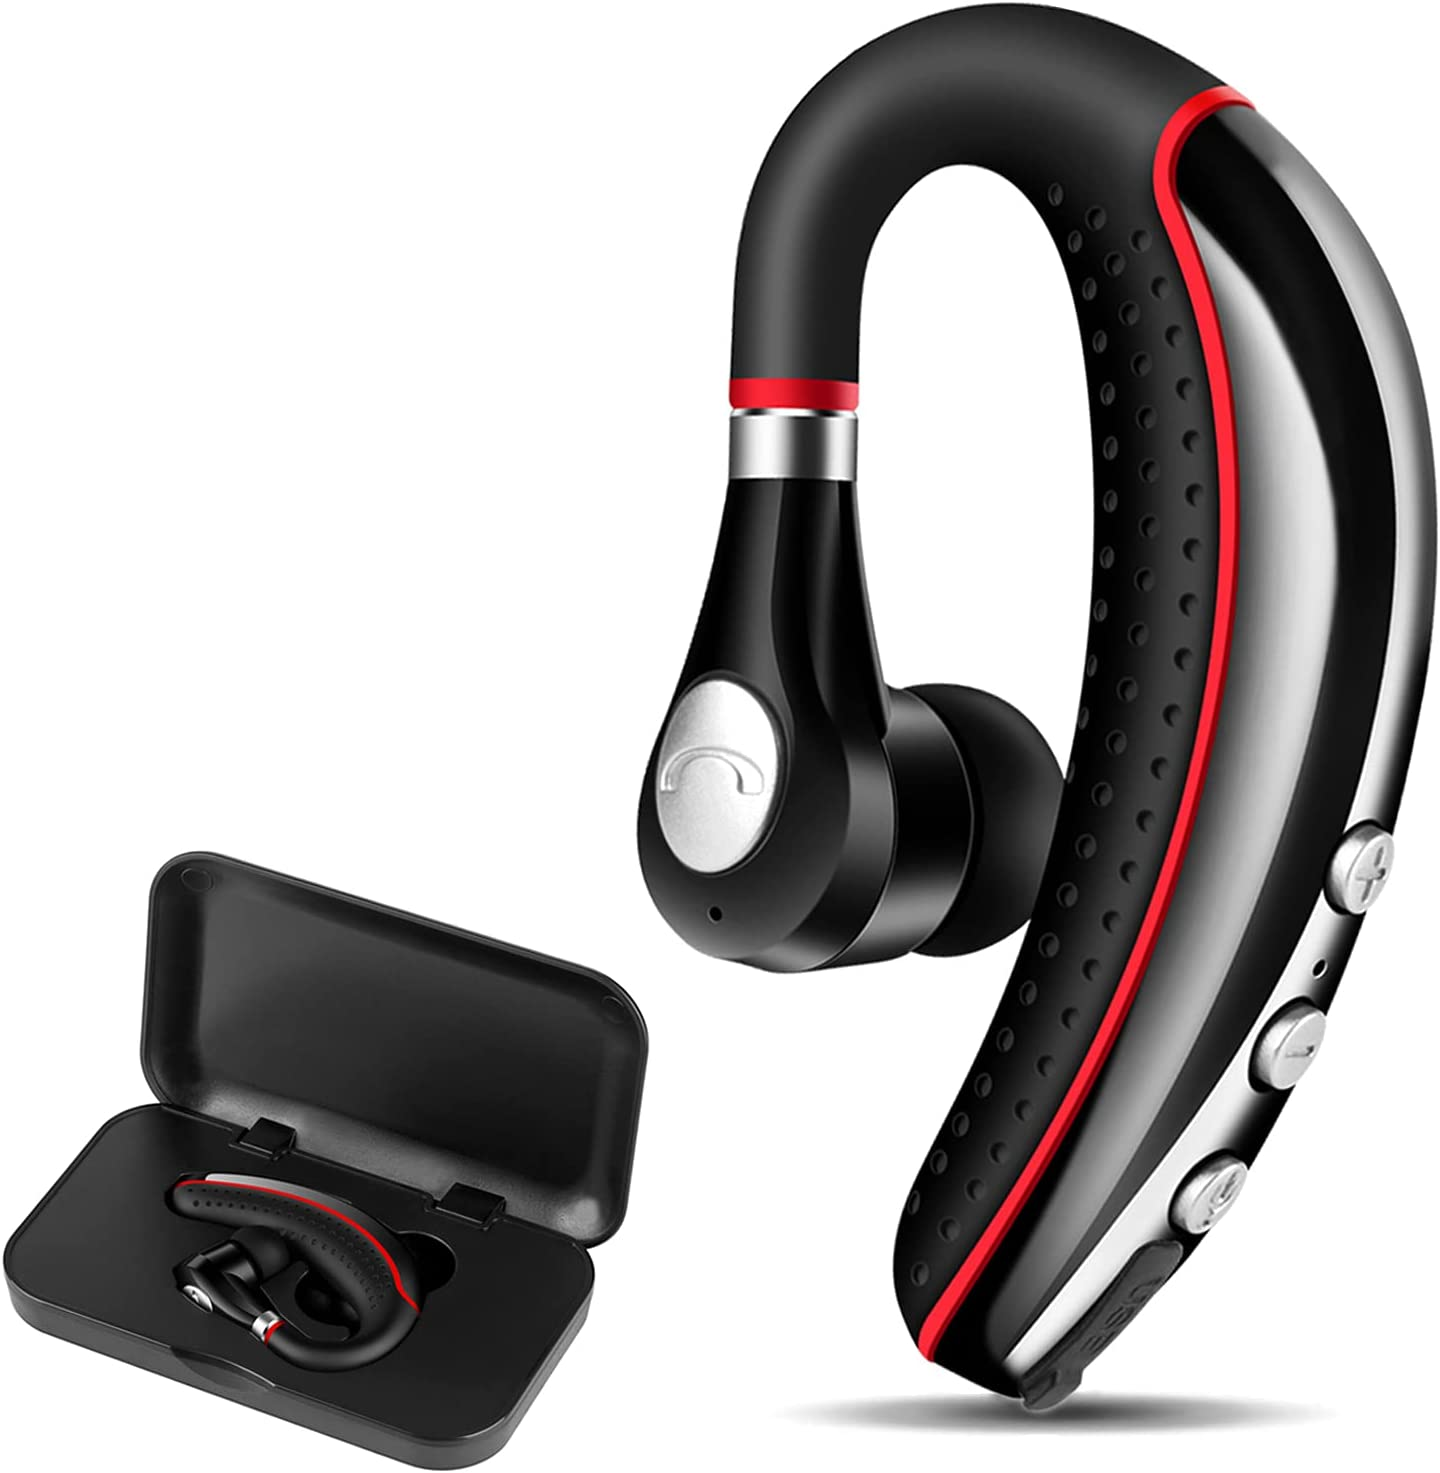 Bluetooth Headset V5.0,Wireless Bluetooth Earpiece with Noise Canceling Mic for Cell Phone,Ultralight Business Earphone for Driving/Trucker/Office,Sweatproof Headset for Android/iPhone/Smartphone